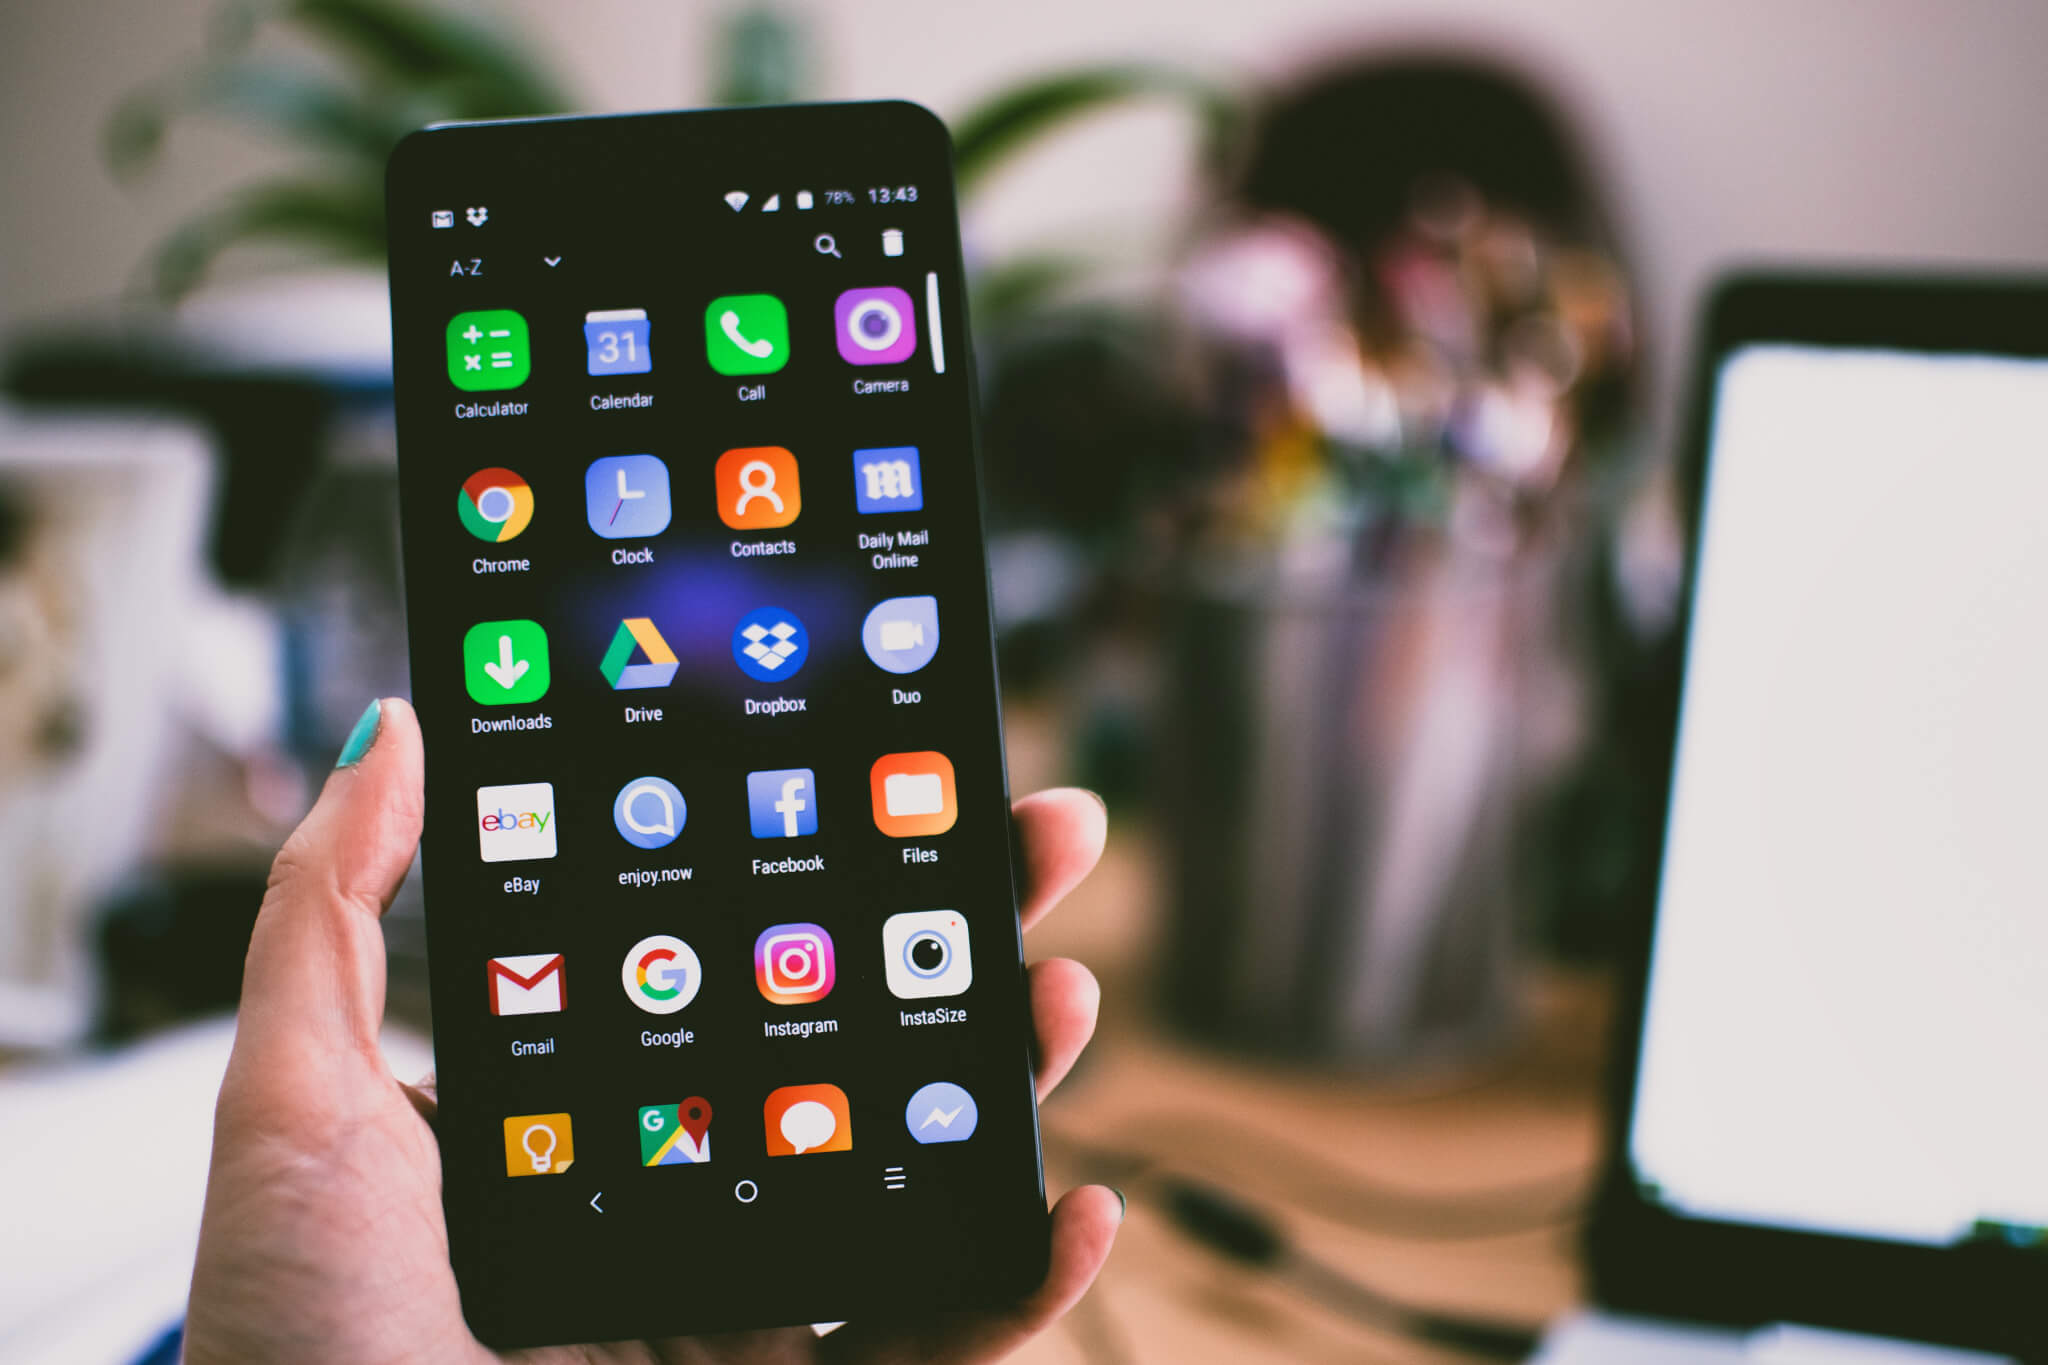 The Top Paid & Free Android Spy Apps Of 2019